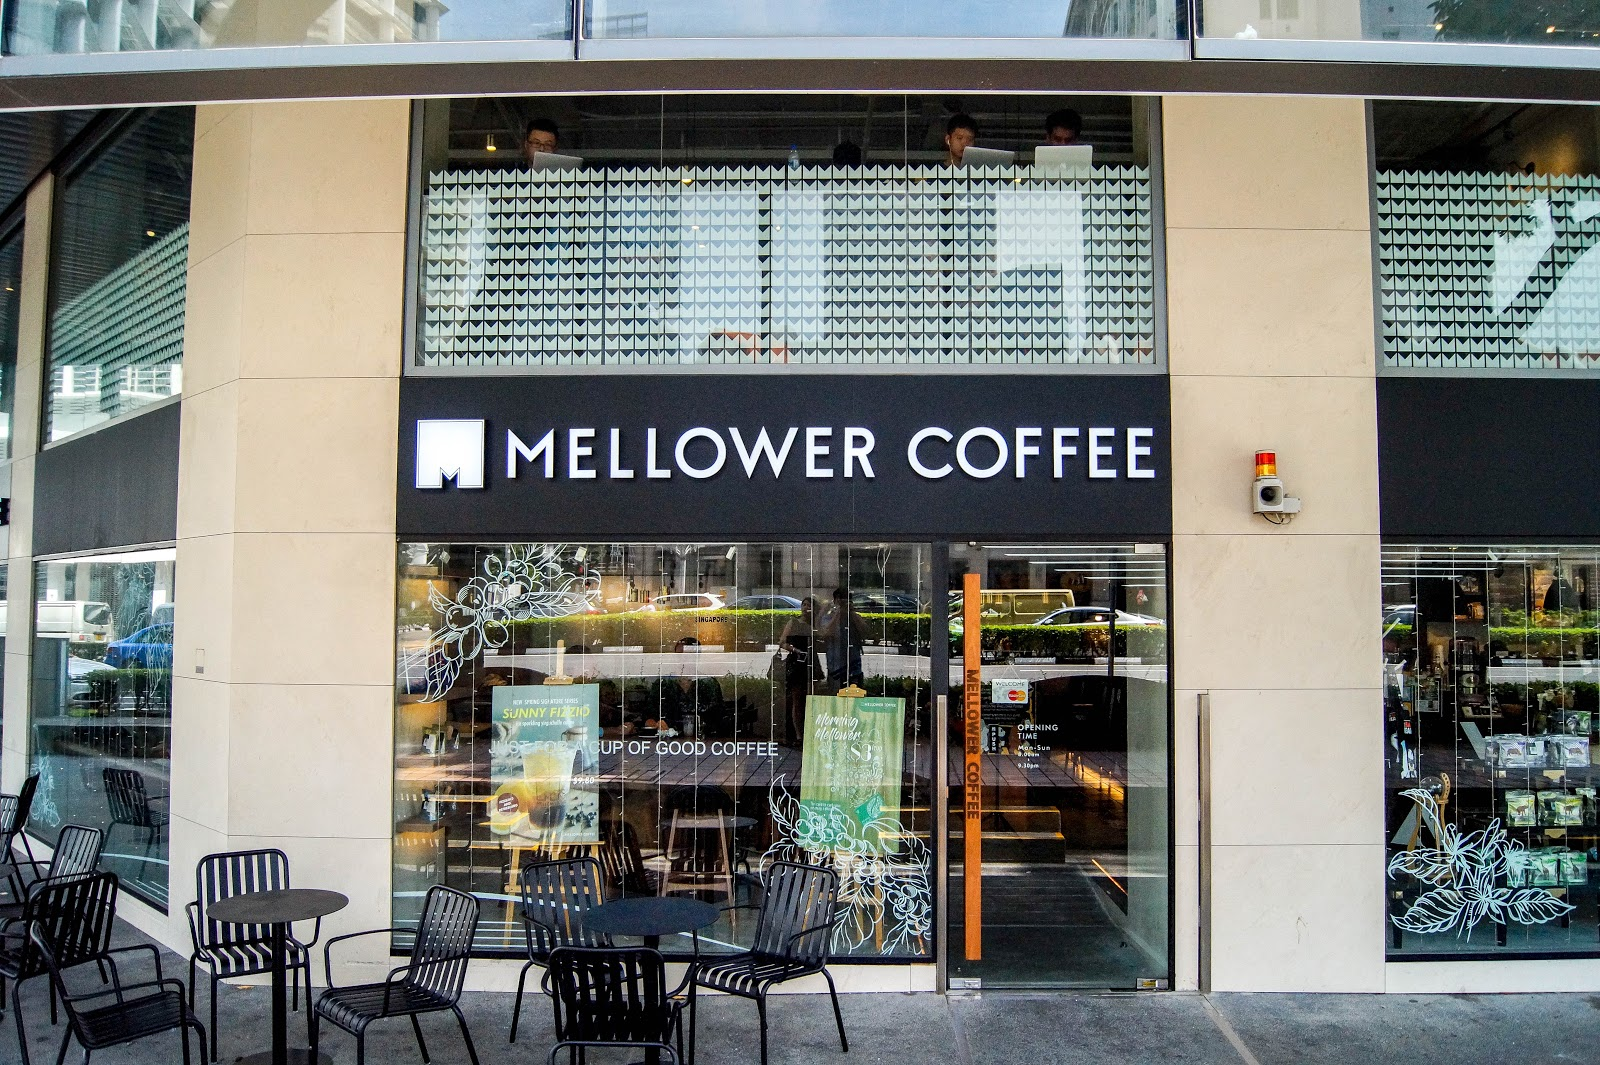 Shopfront of a Mellower Coffee branch